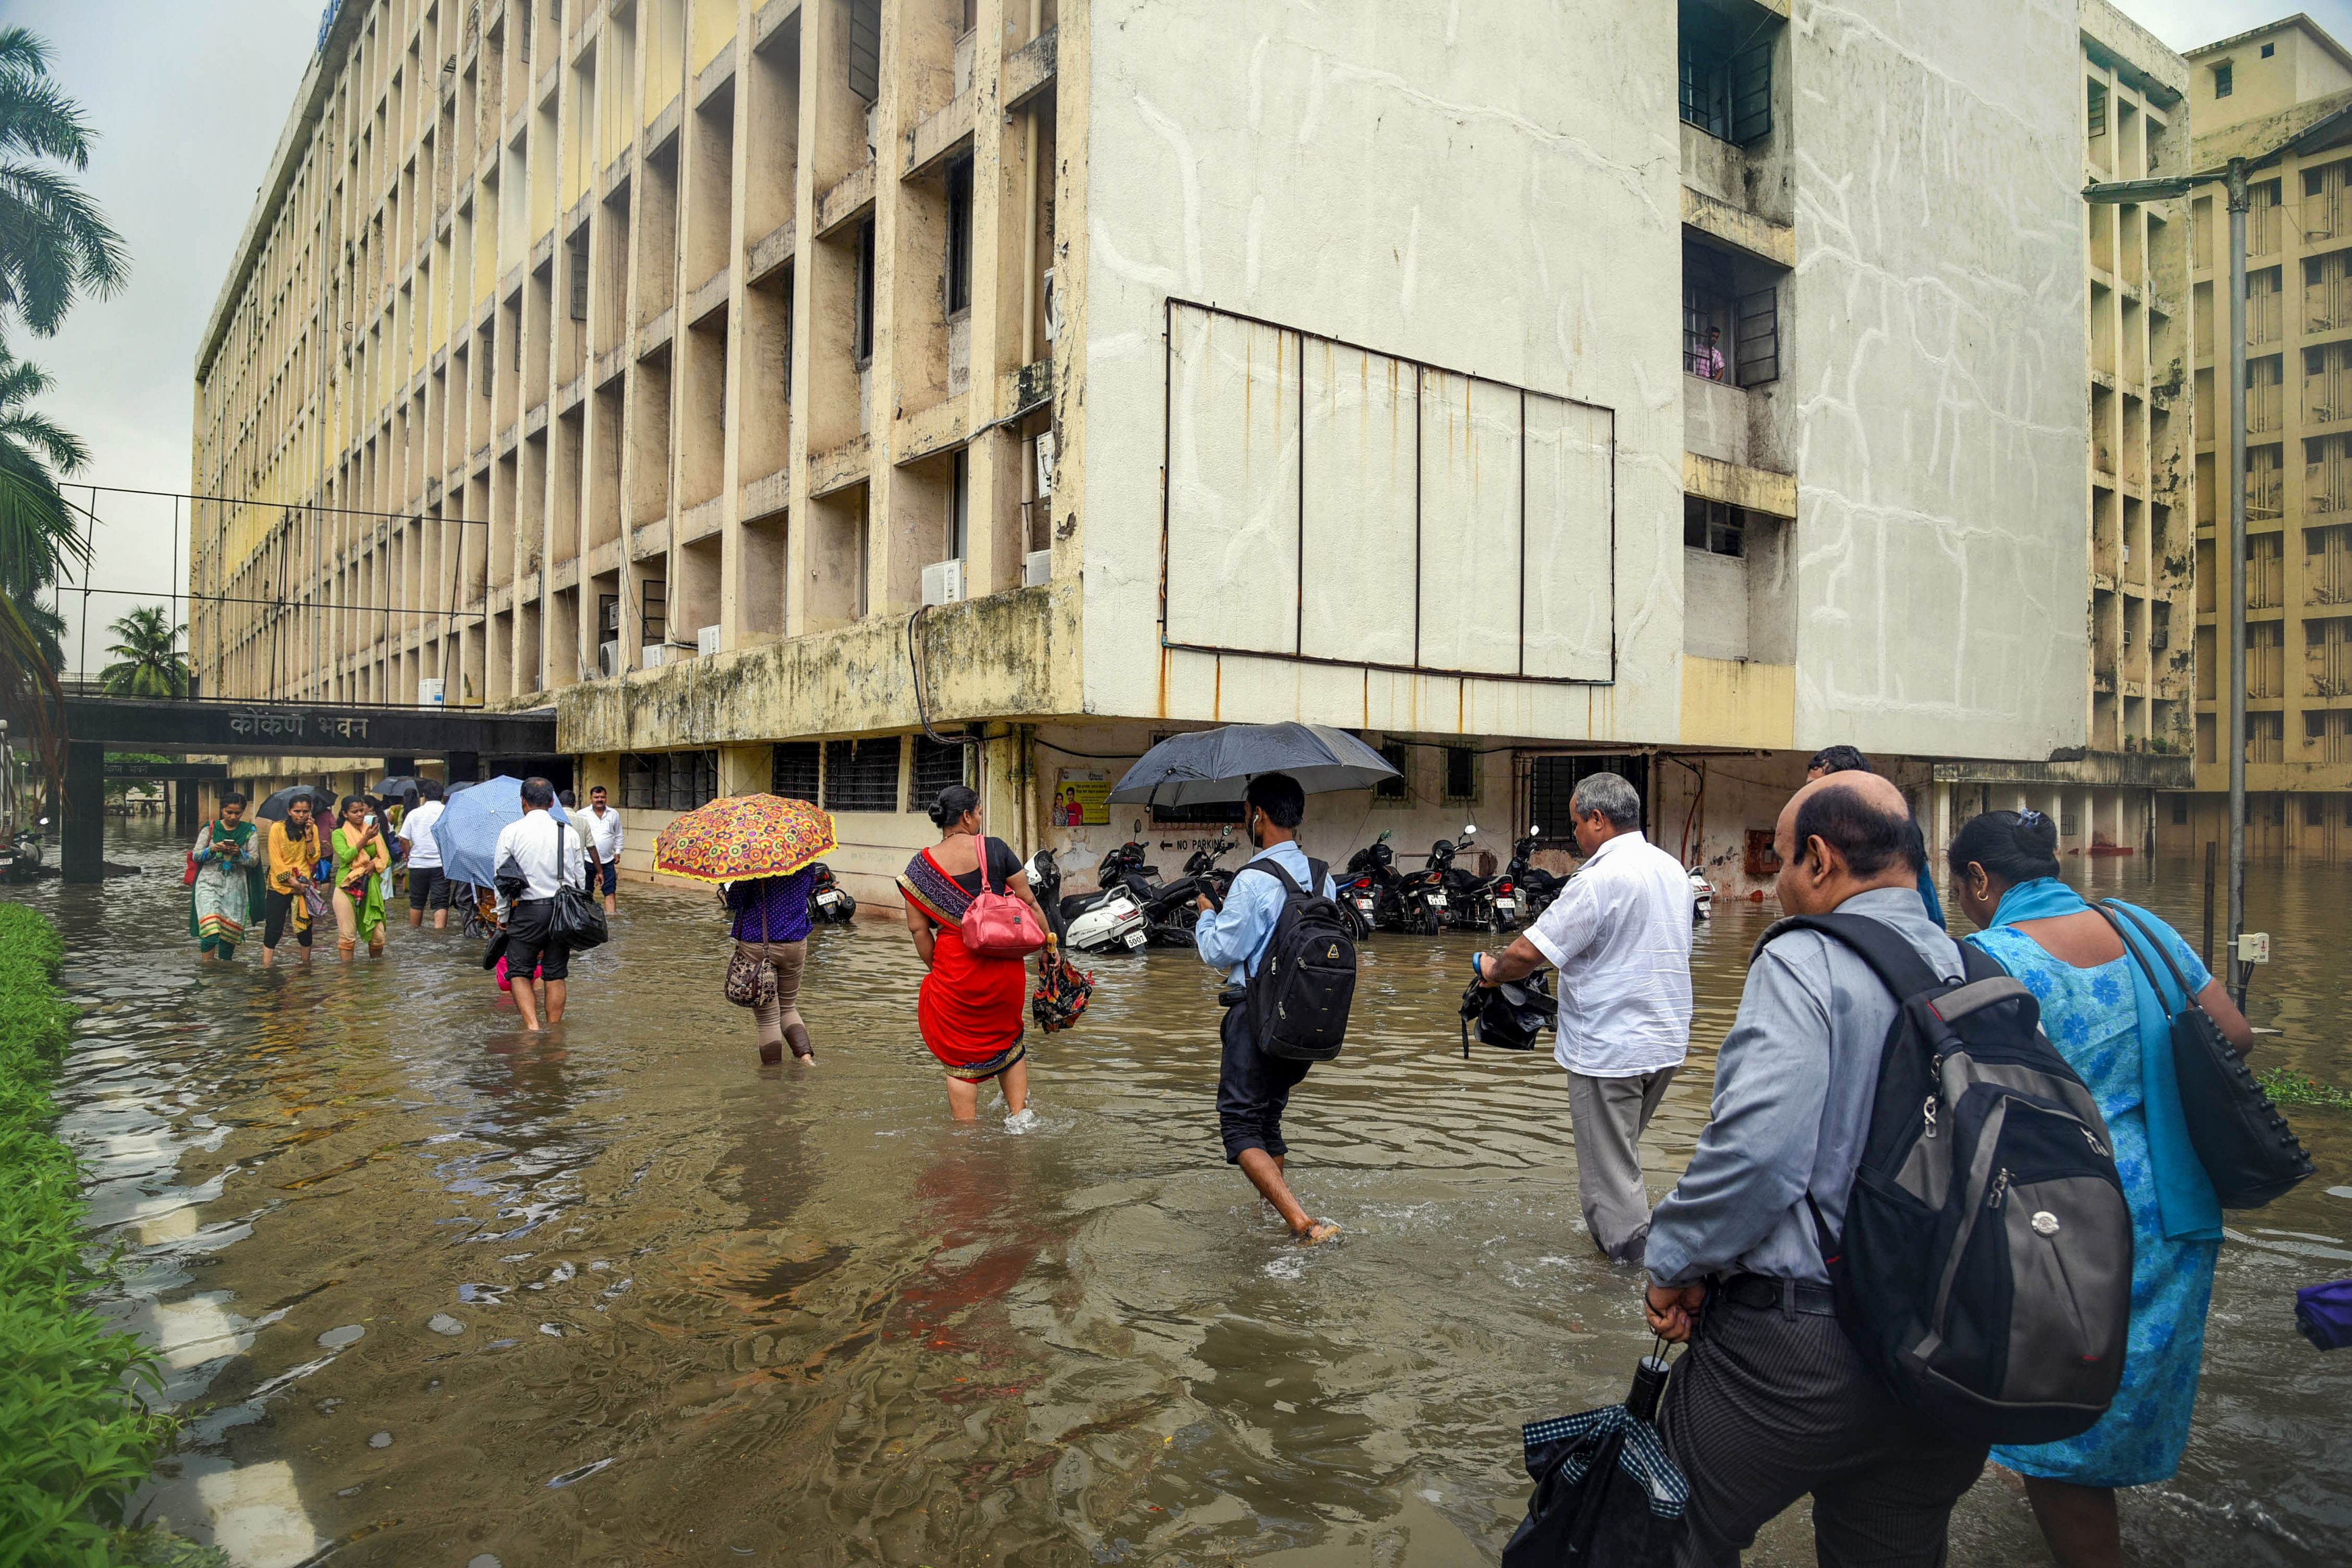 People make their way to the waterlogged Konkan Bhavan in Navi Mumbai that houses government offices after heavy rain on July 1.